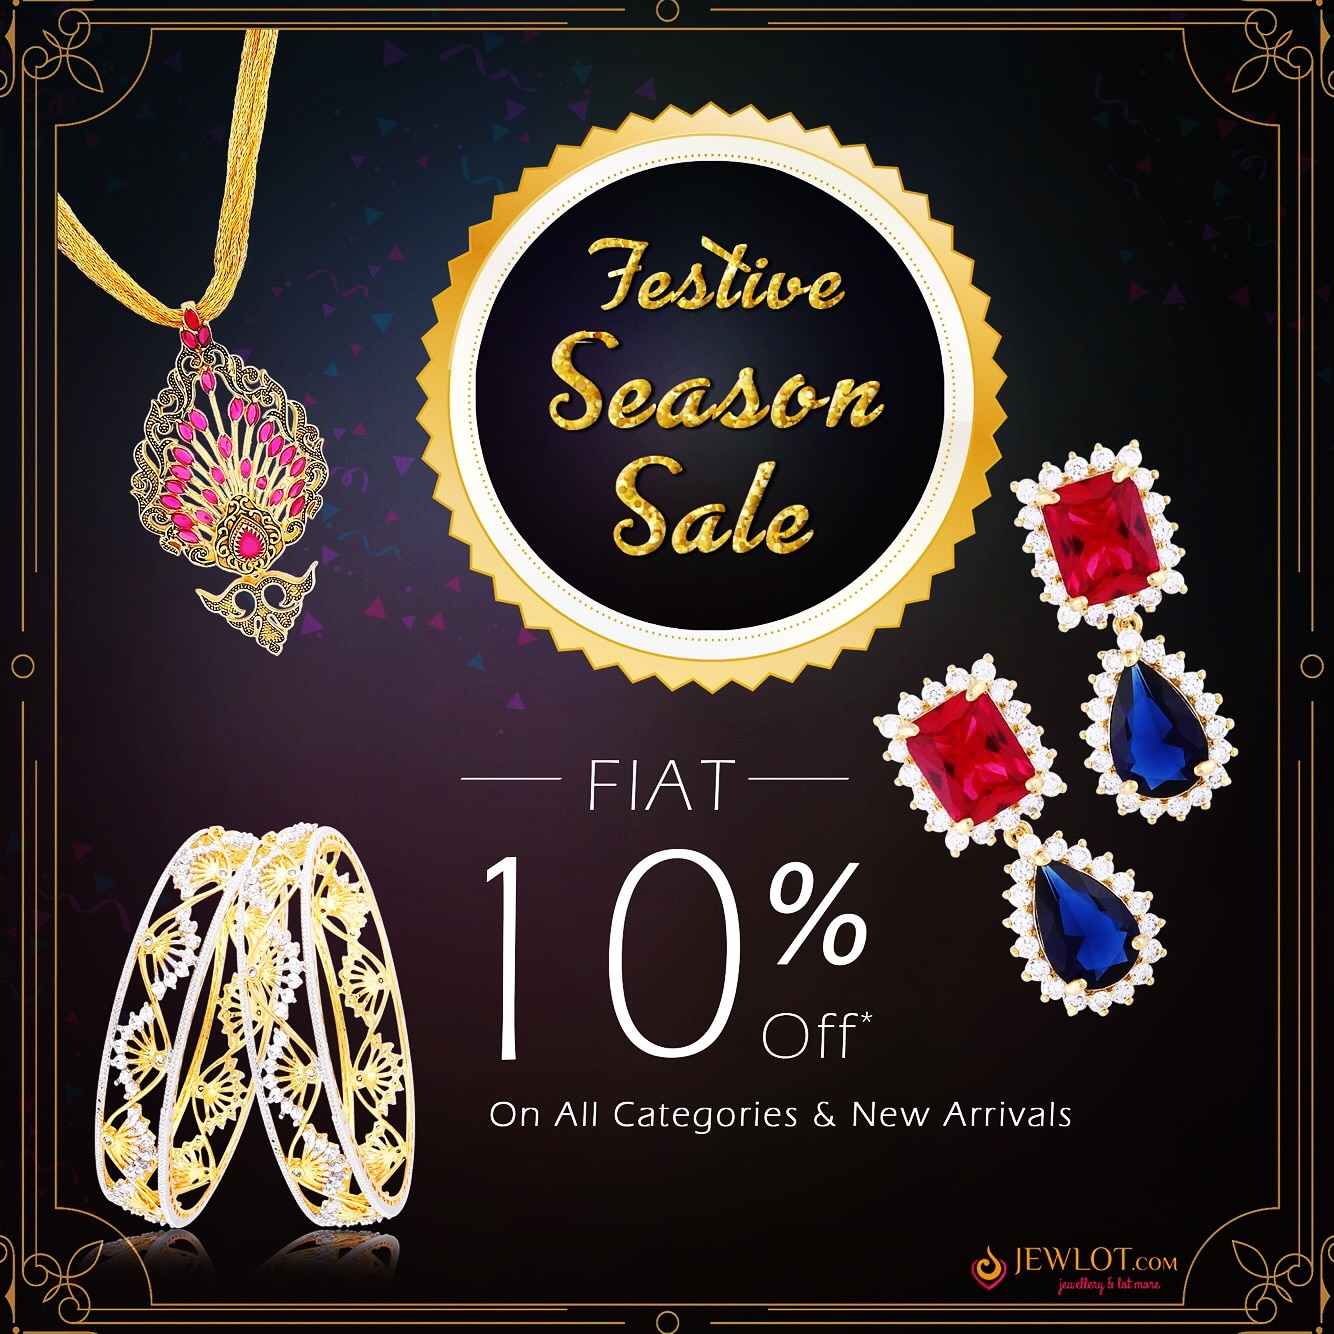 Festive Season SALE, Flat 10% Off On Your Favourite Jewellery♥ Worth The Wait!! Grab It Fast!! Coupon Code